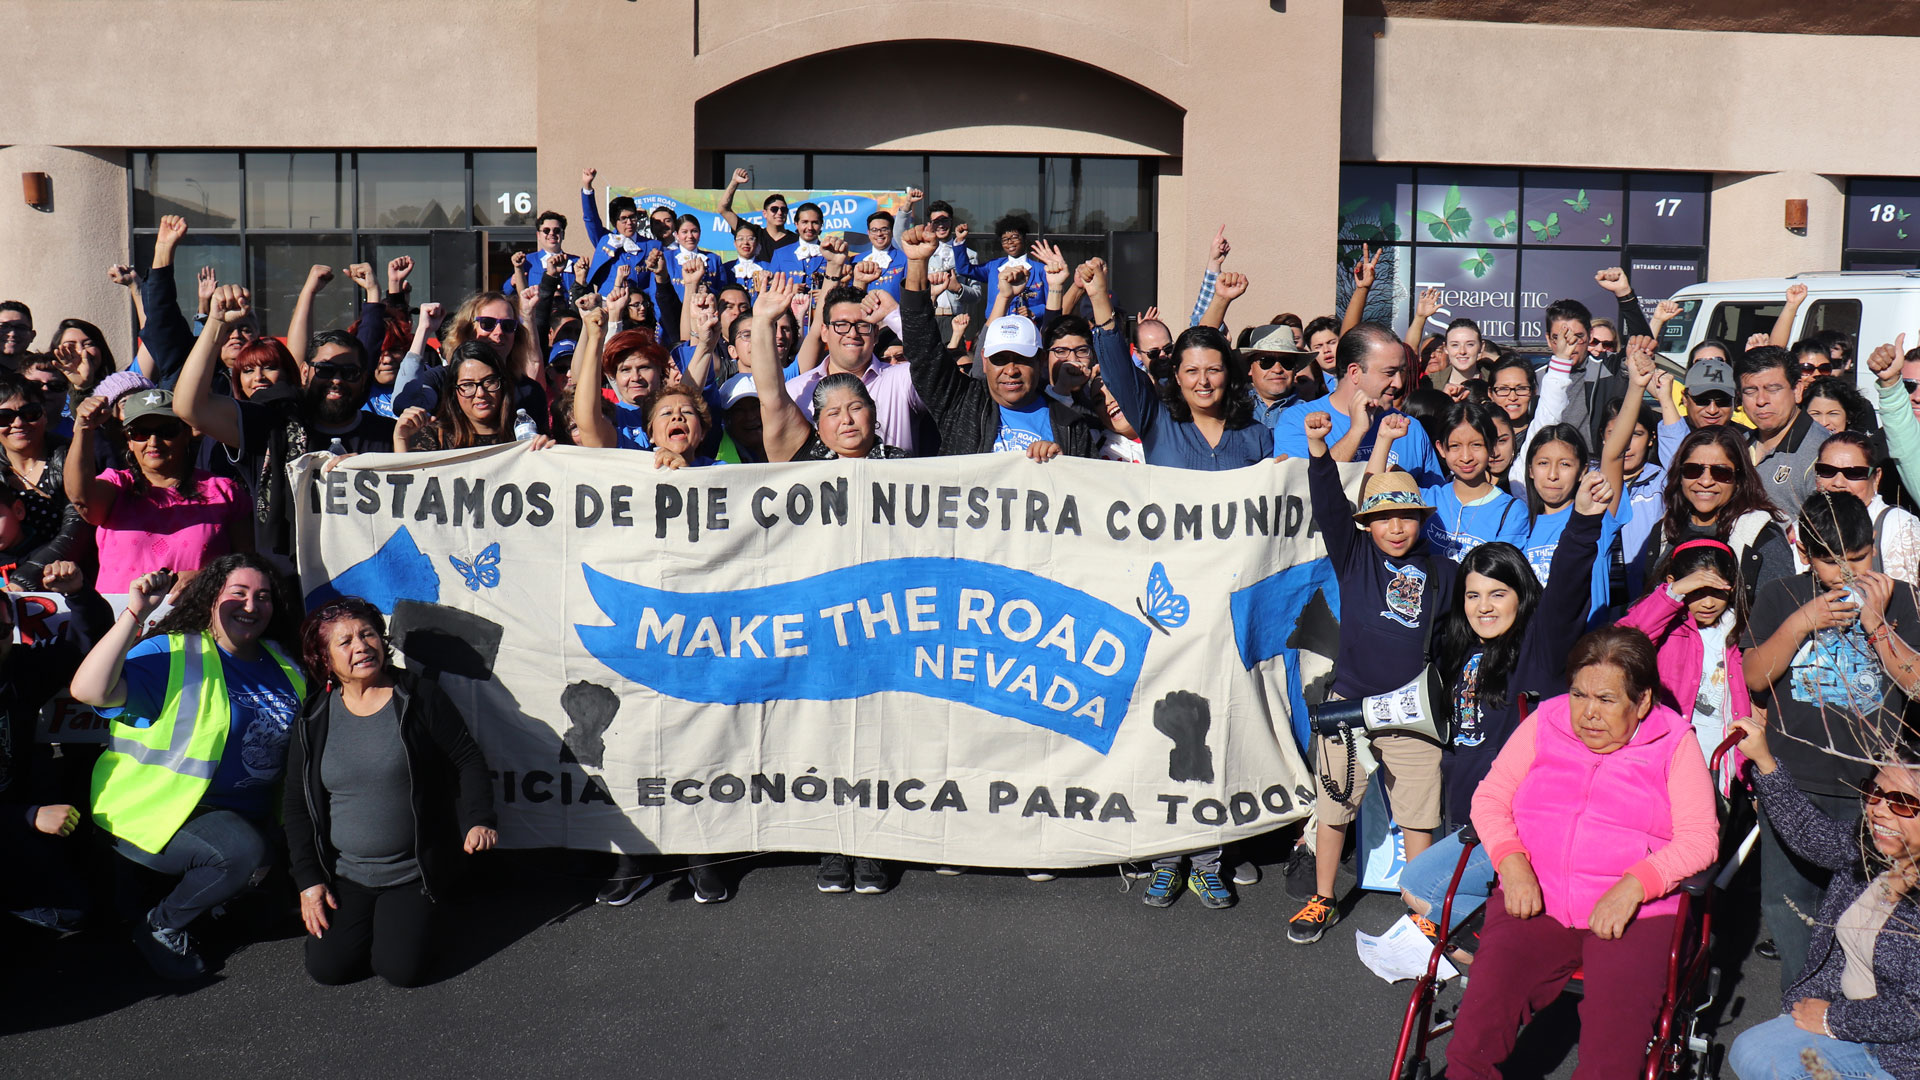 Make the Road Nevada staff members pose for a photo holding a banner in spanish